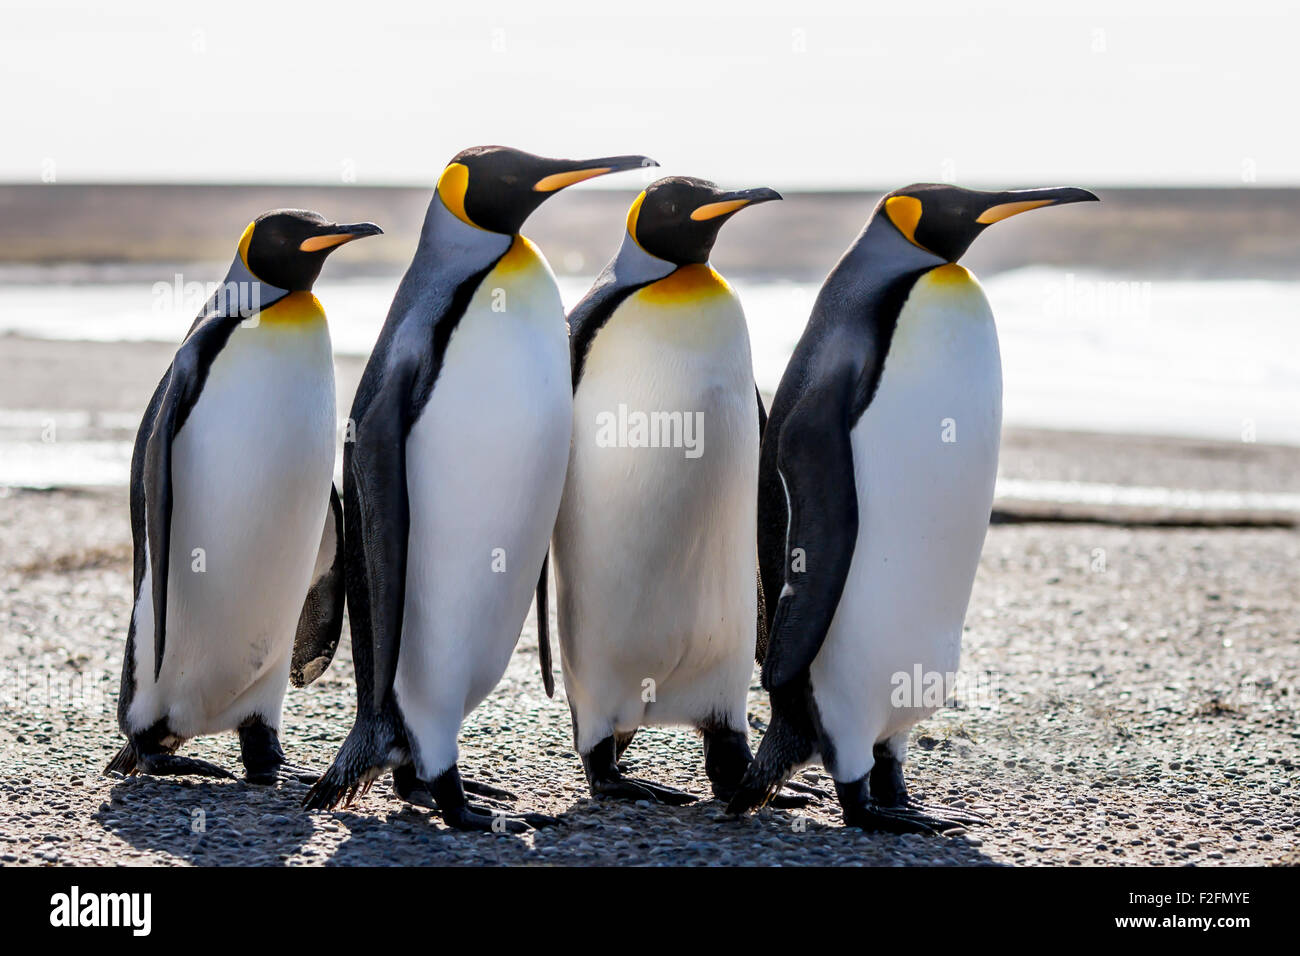 Four King Penguins (Aptenodytes patagonicus) standing together on a beach. Volunteer Point, Falkland Islands. - Stock Image